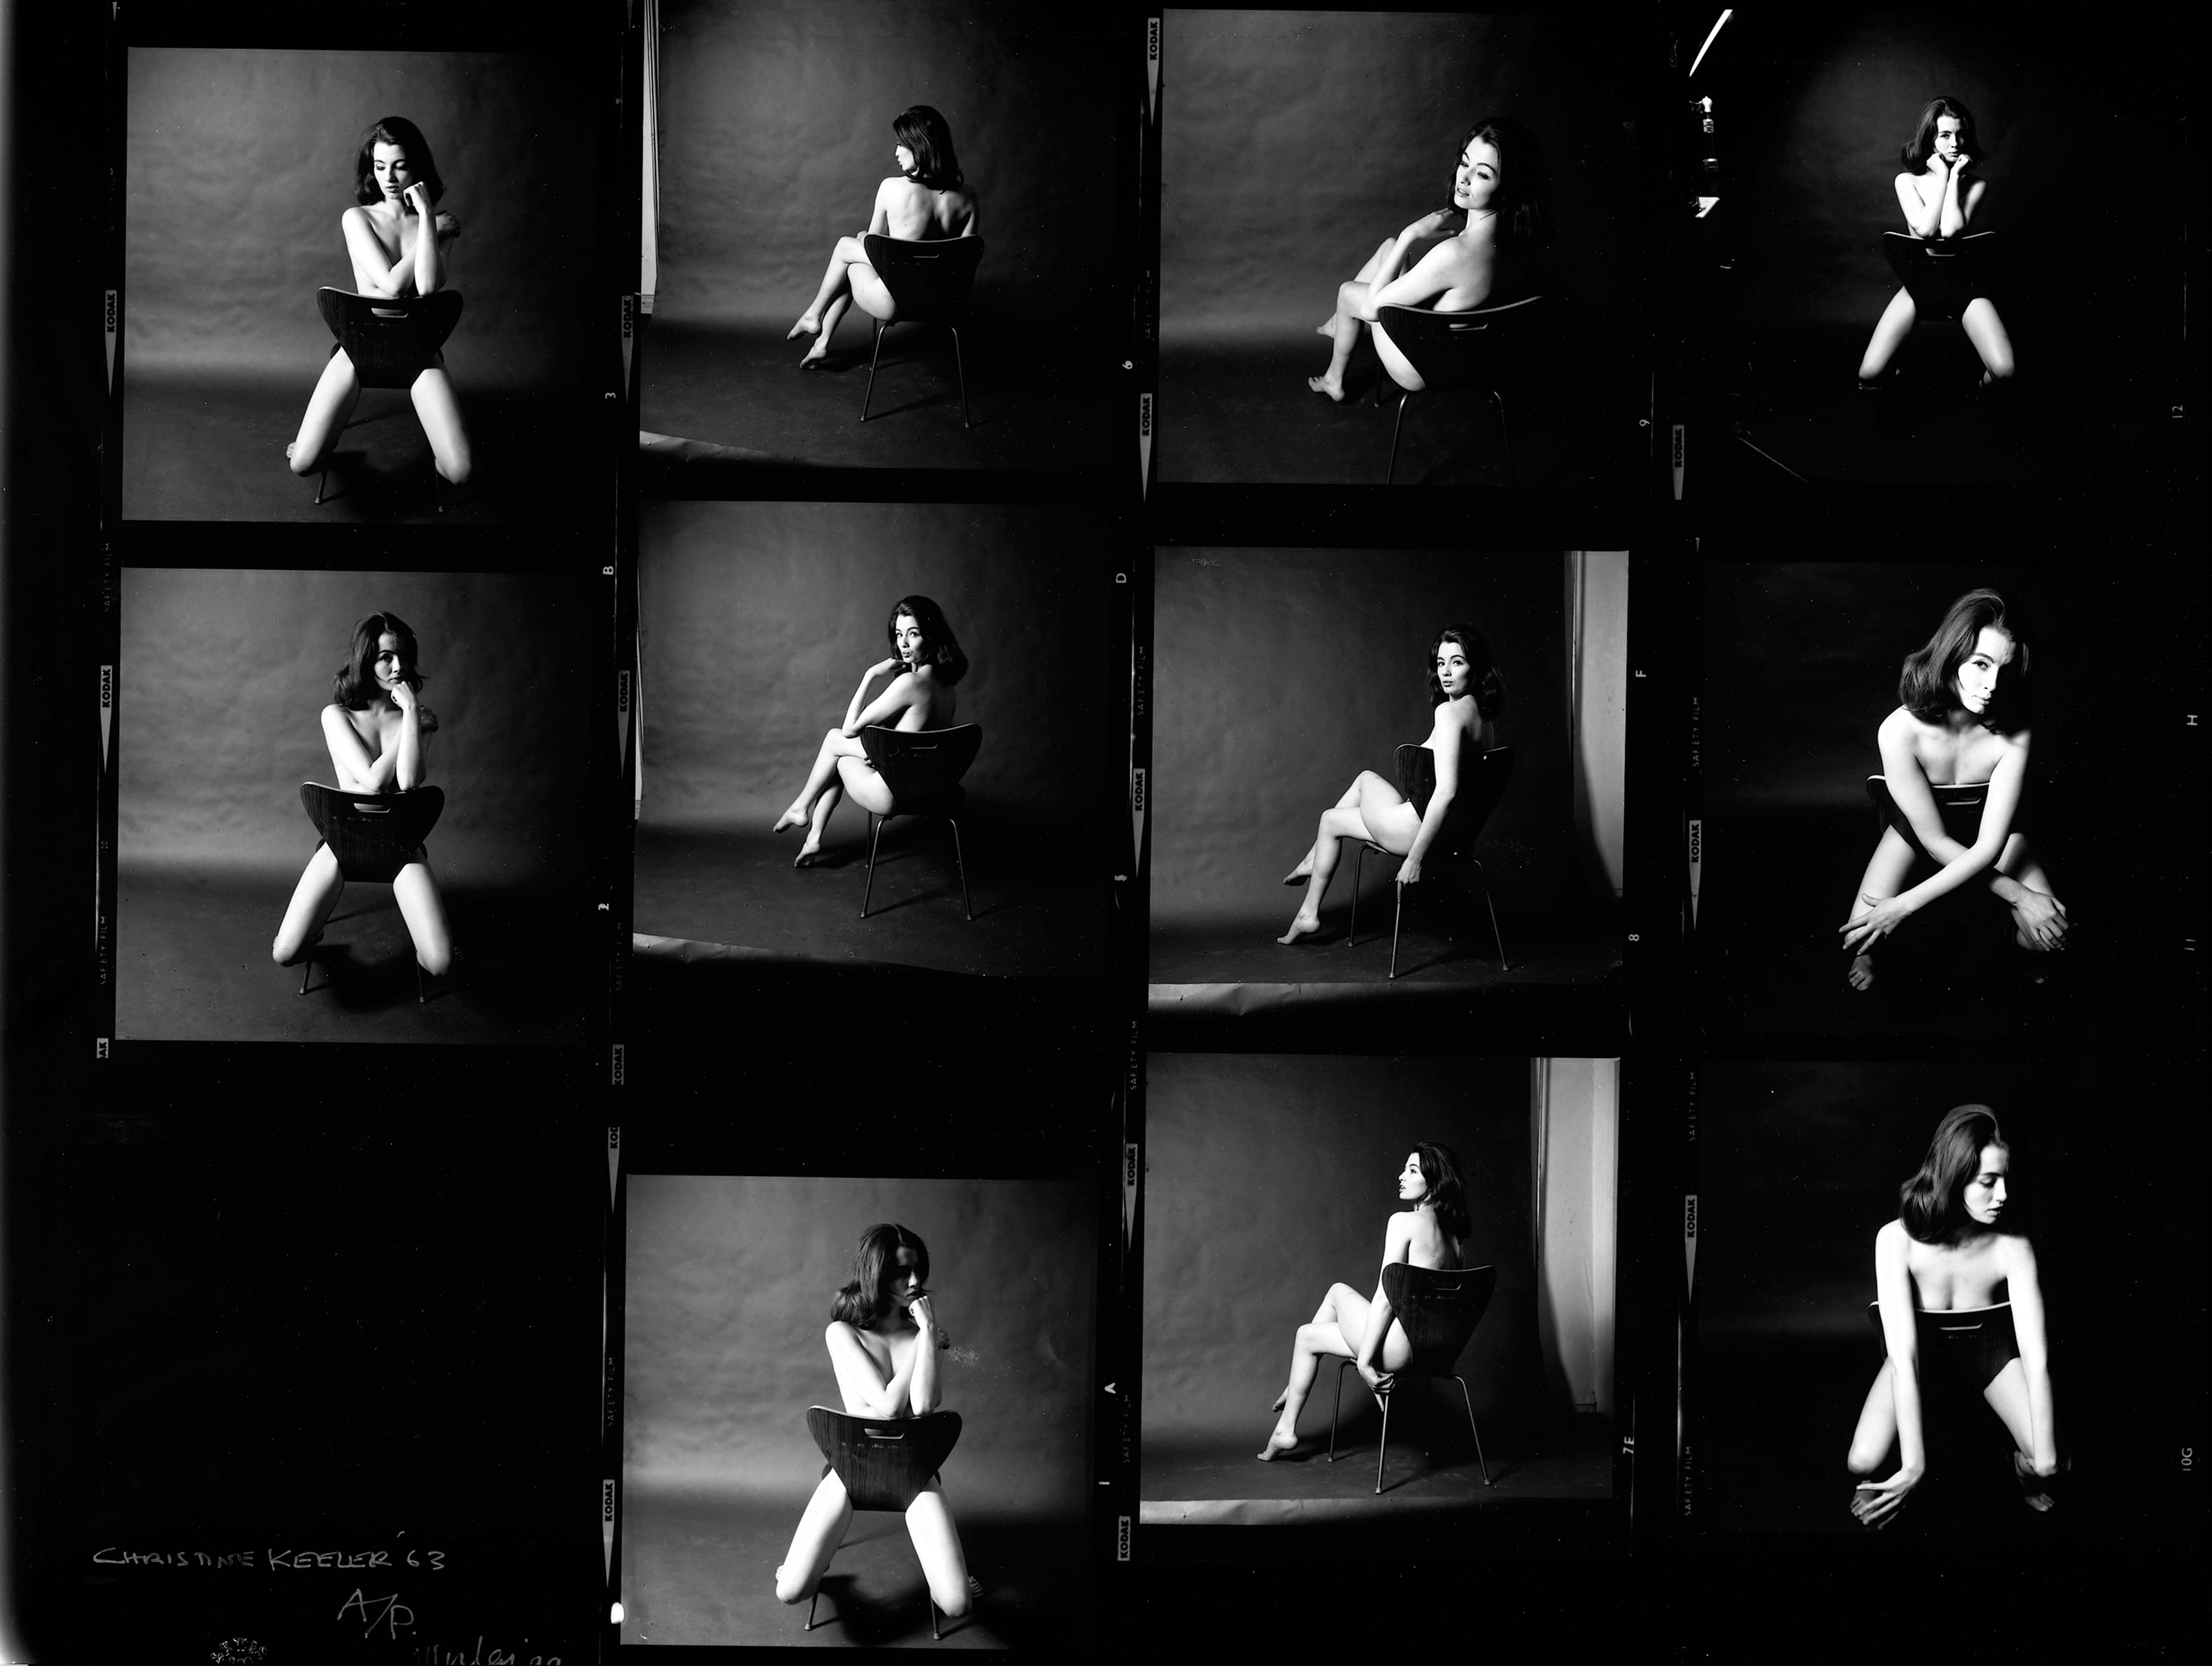 Christine Keeler photographs by Lewis Morely, 1963. Science Society Picture Library